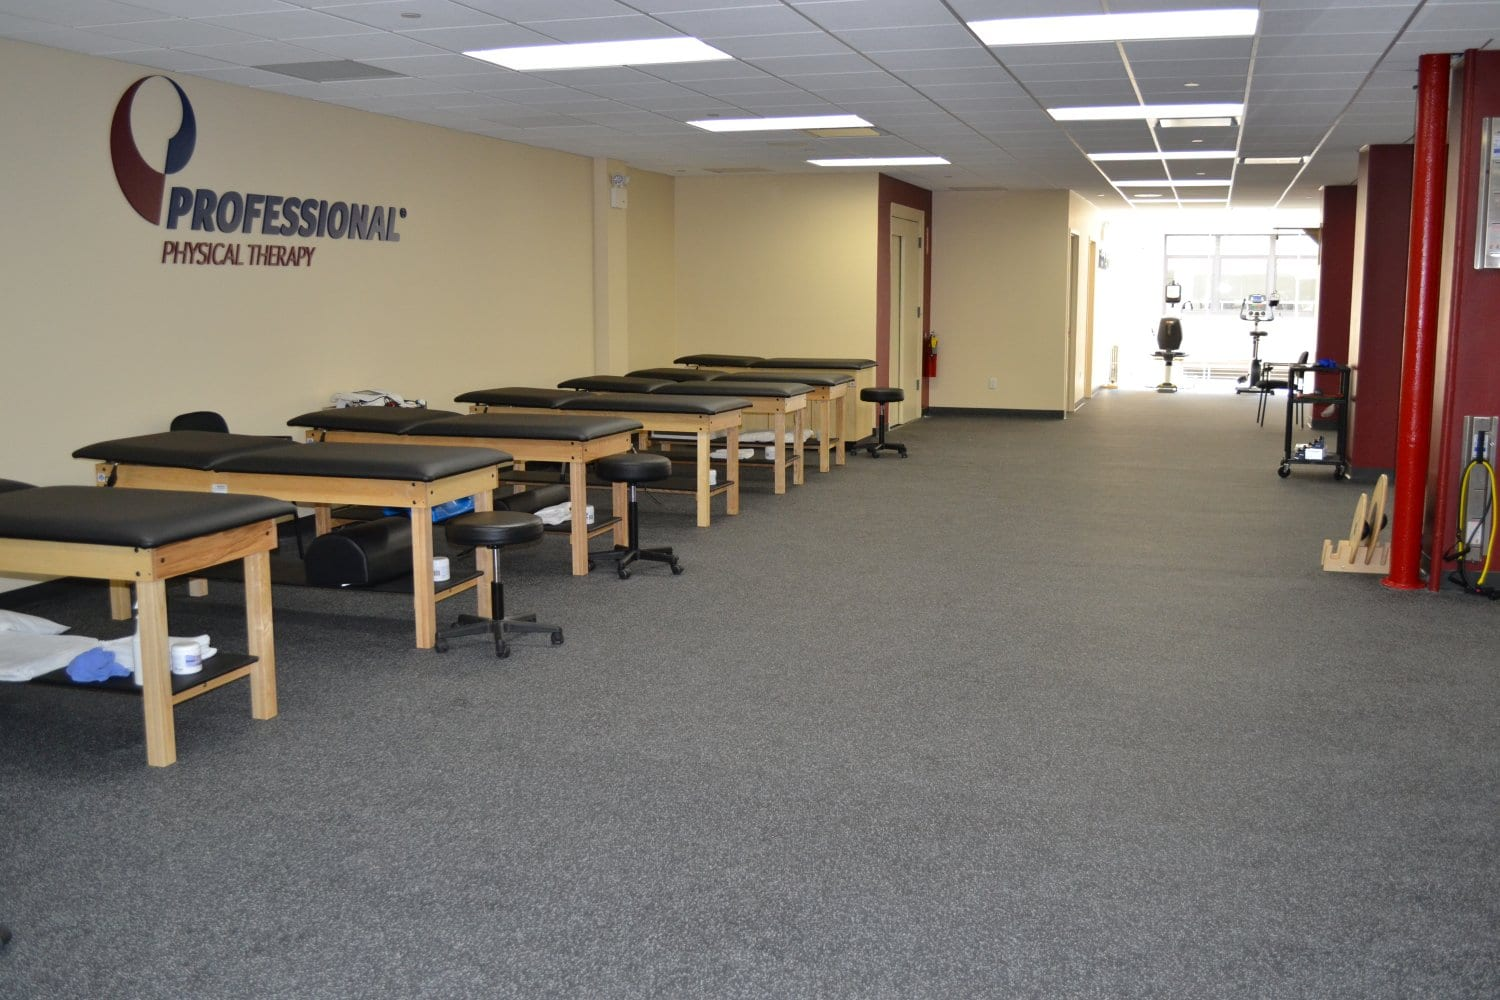 Here is a photo of our clean training room at our physical therapy clinic in Gramercy, New York City. The facility is located in lower Manhattan.